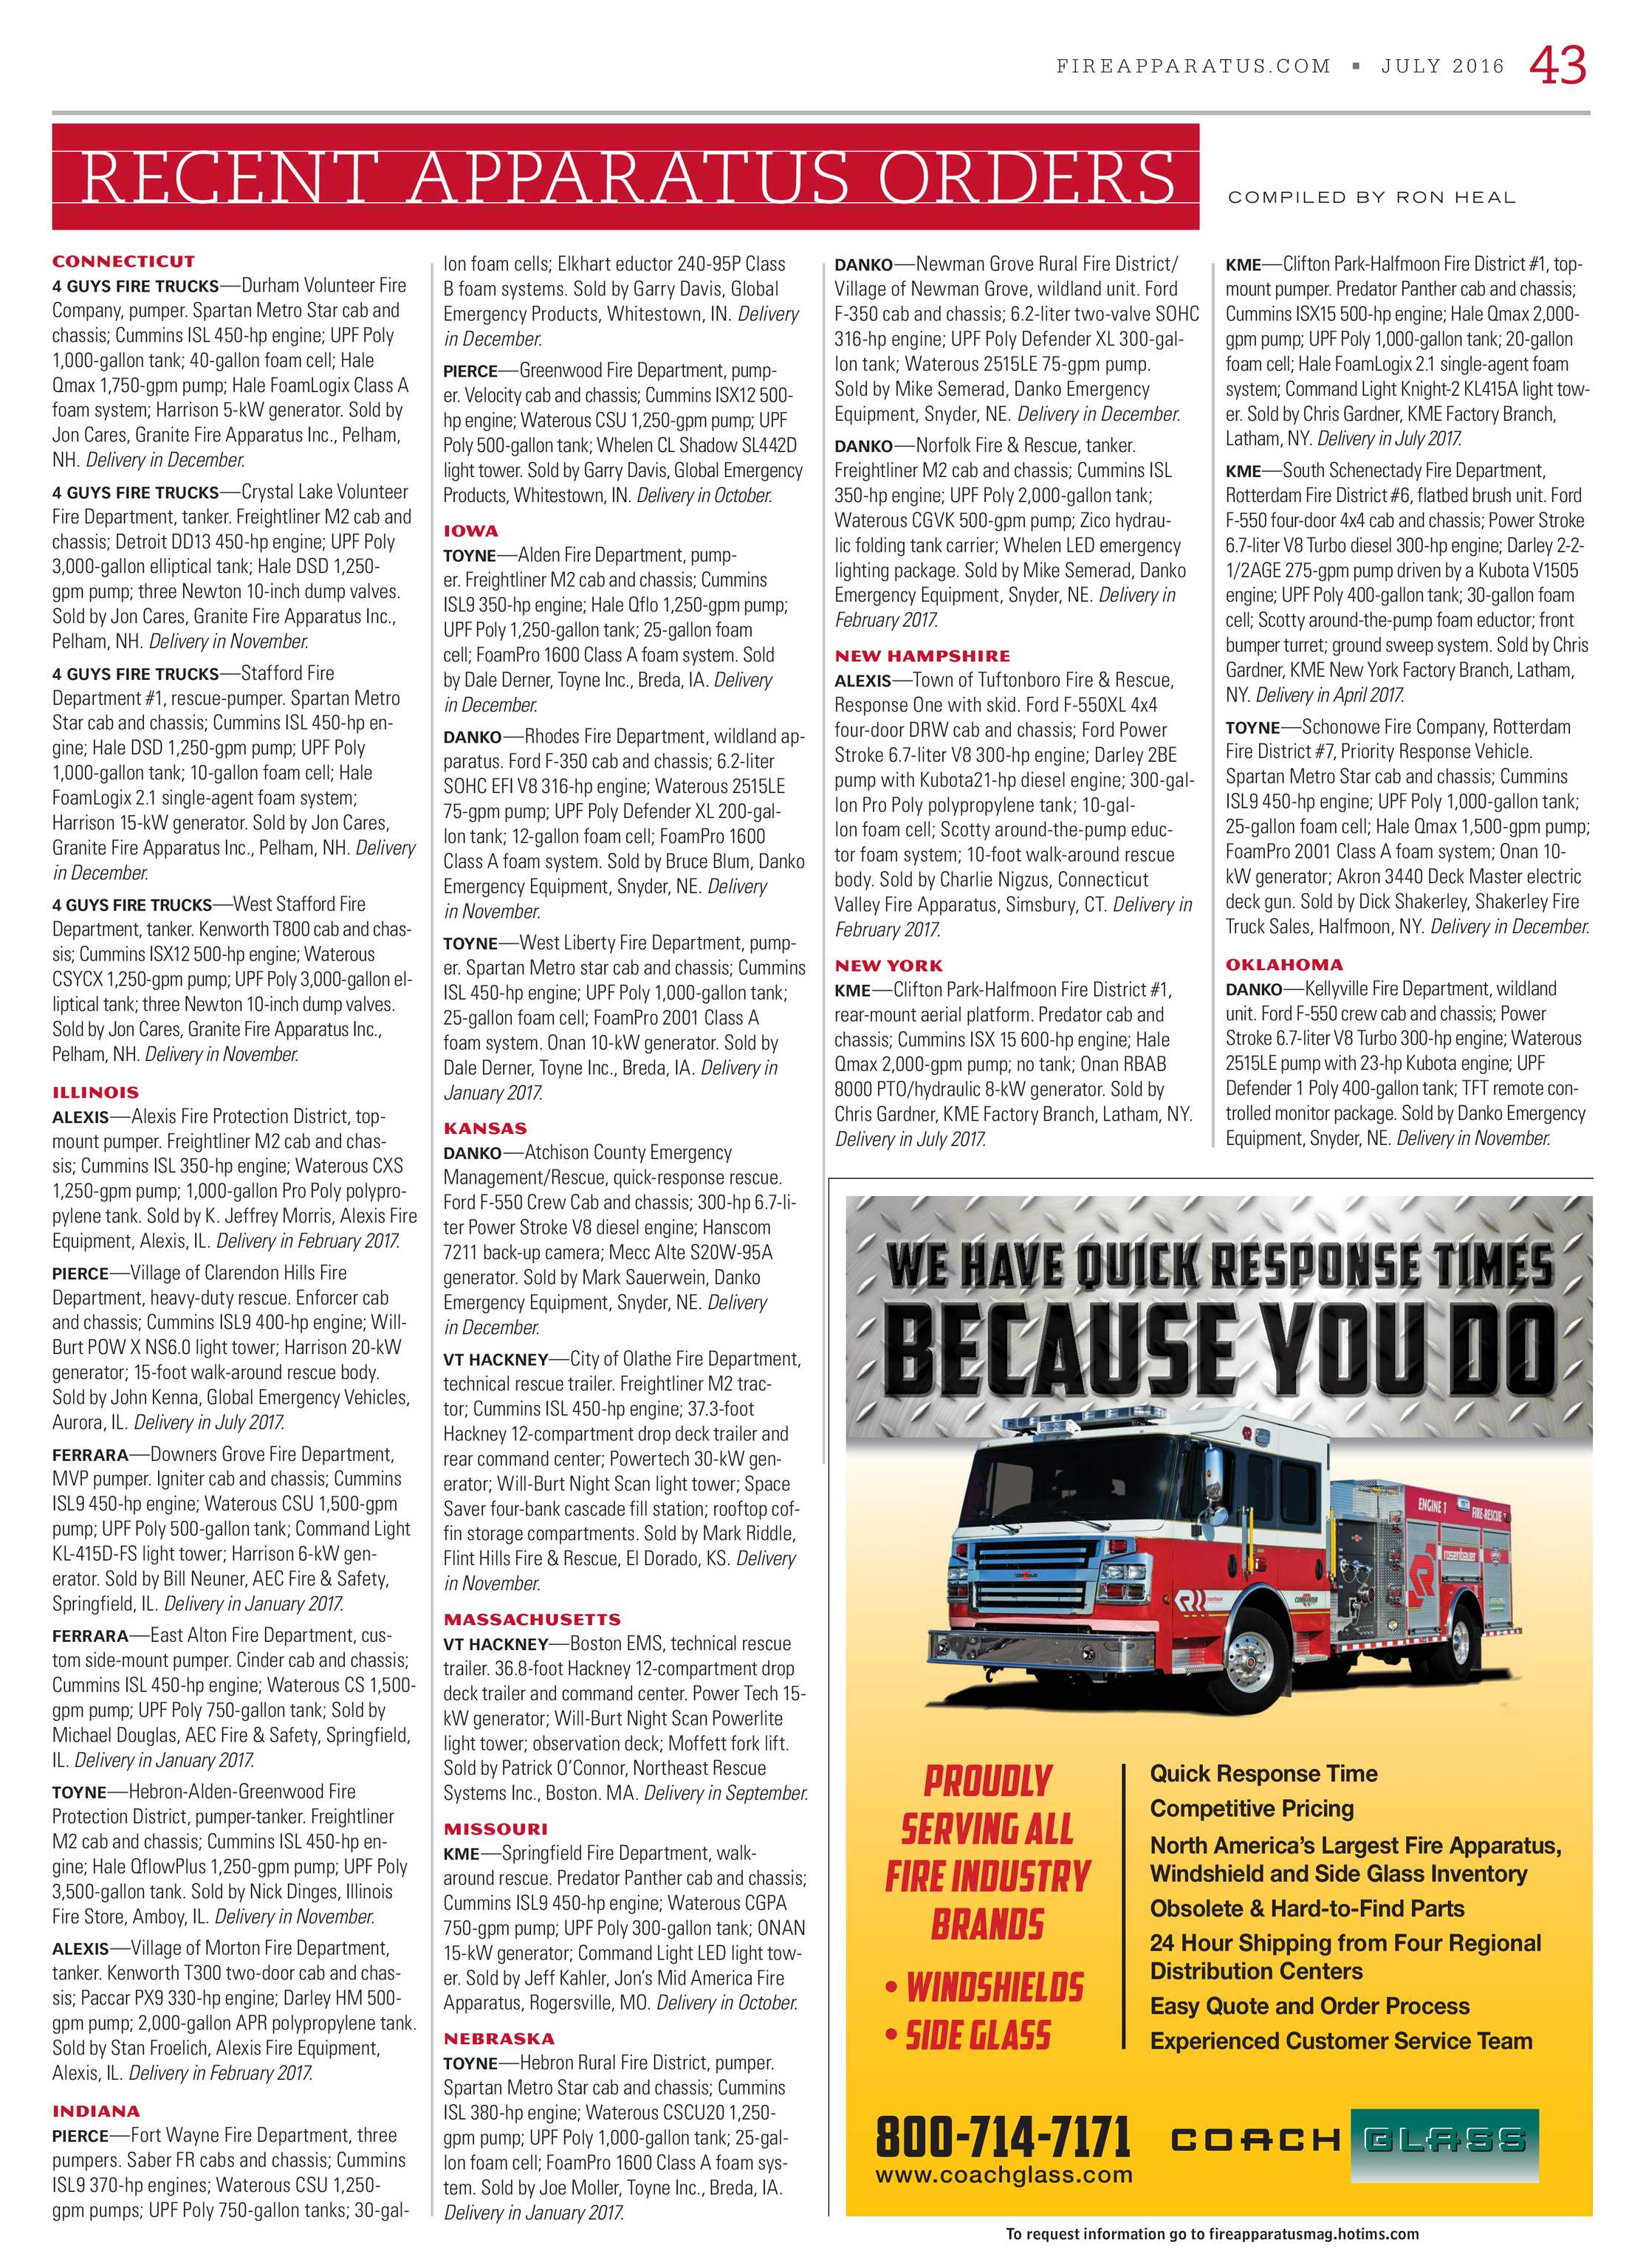 Fire Apparatus Magazine - July 2016 - page 43